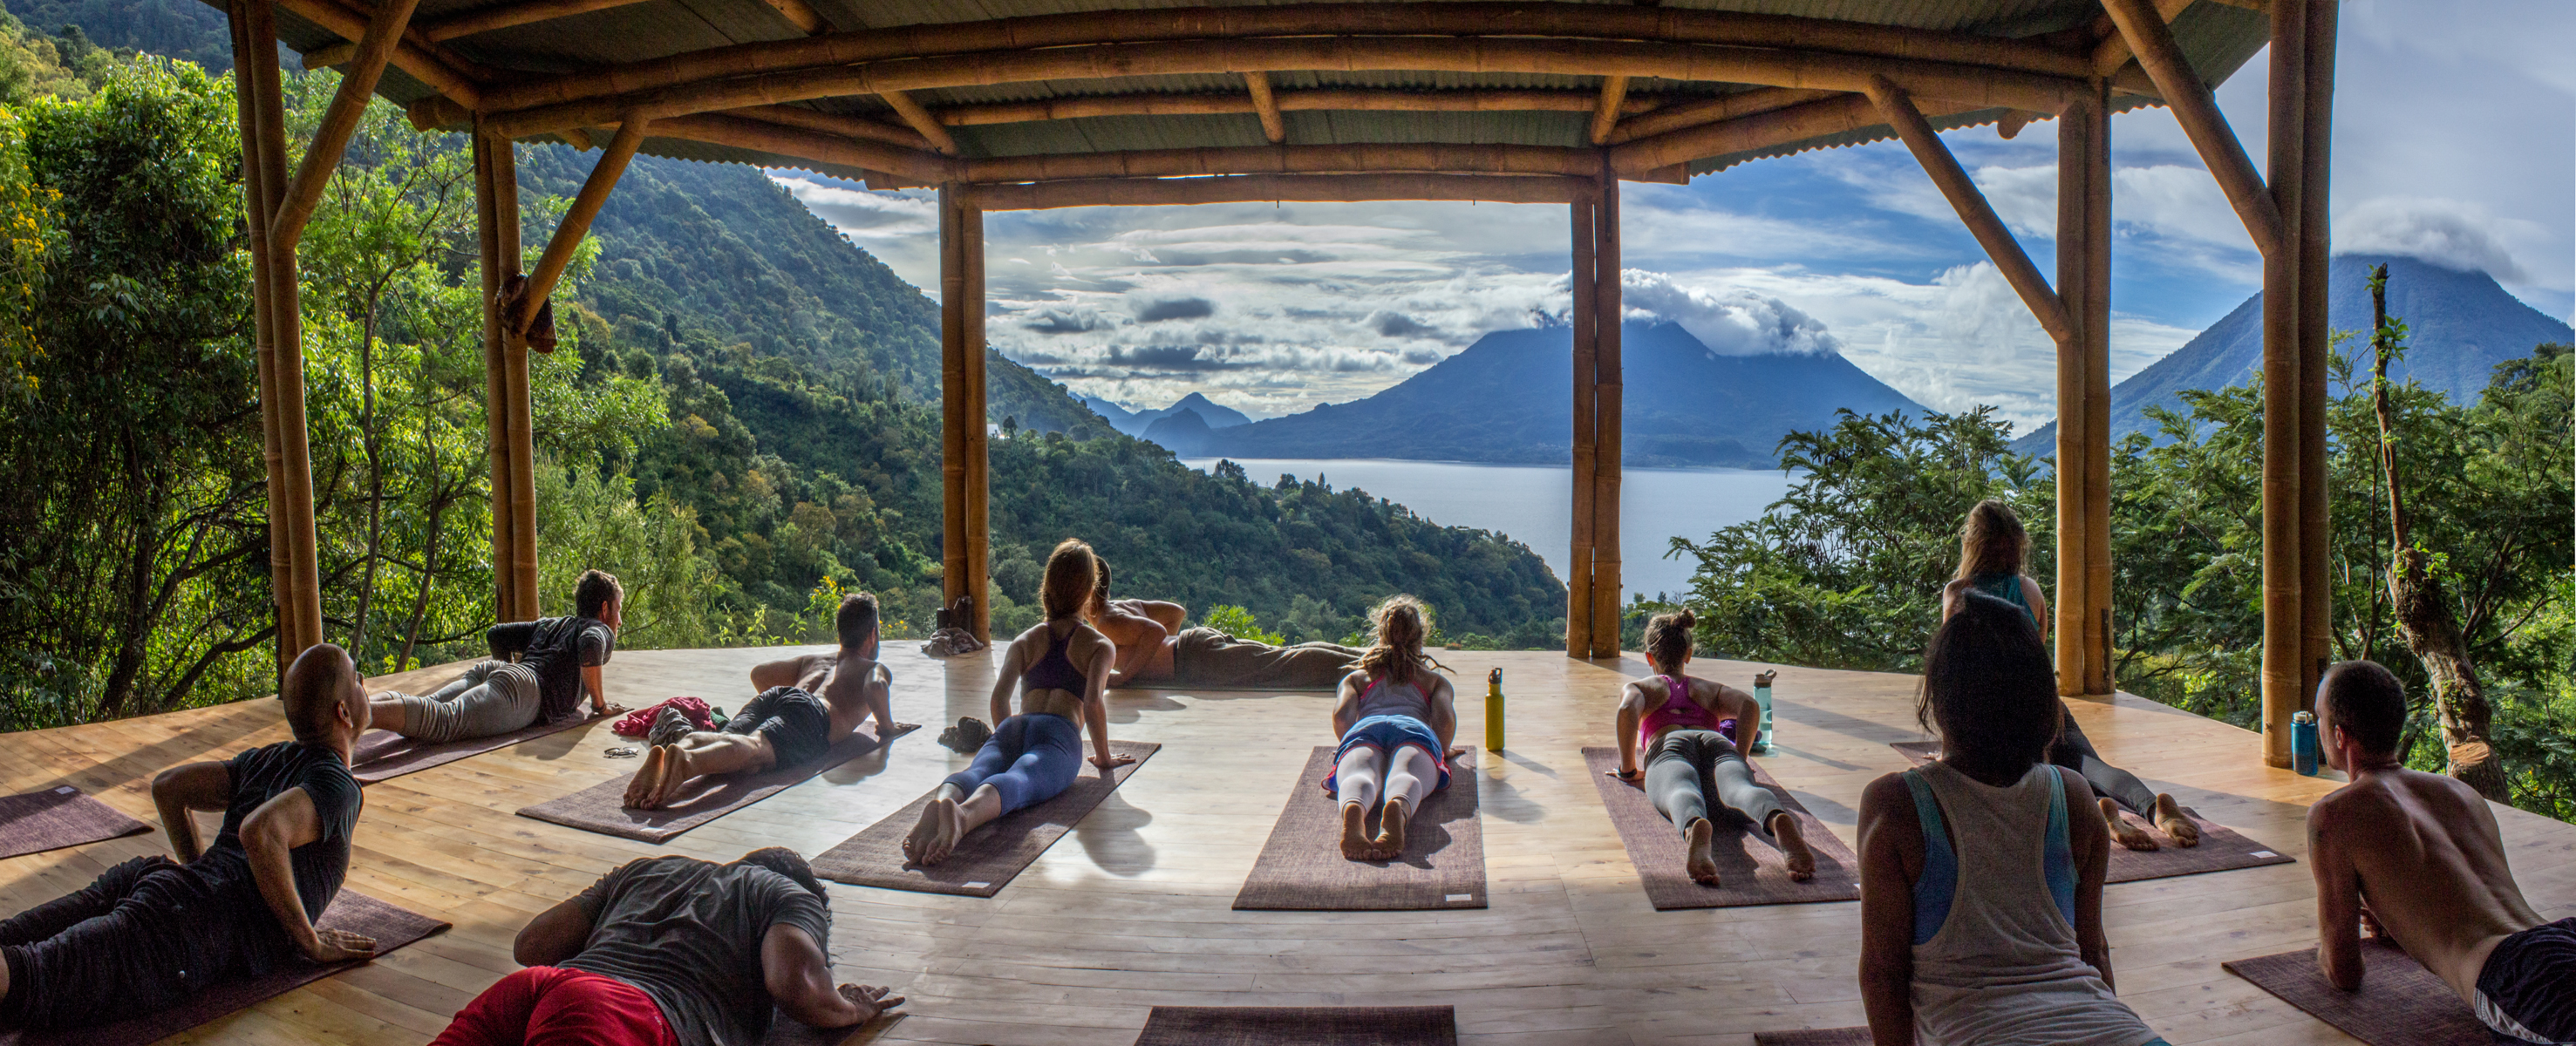 The weird world of yoga retreats | CNN Travel